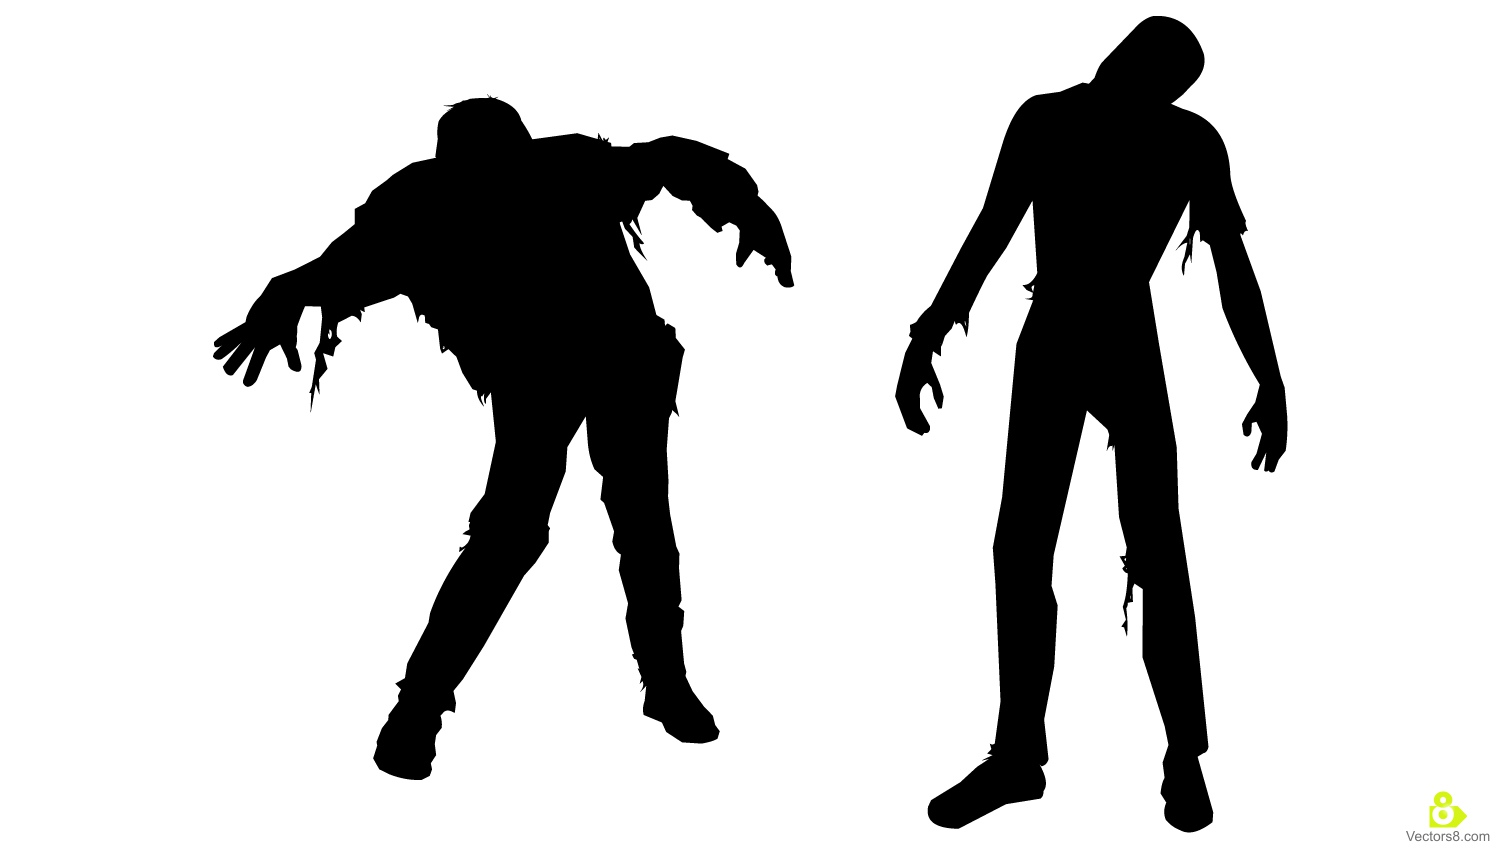 Walking Dead Zombies Silhouettes.